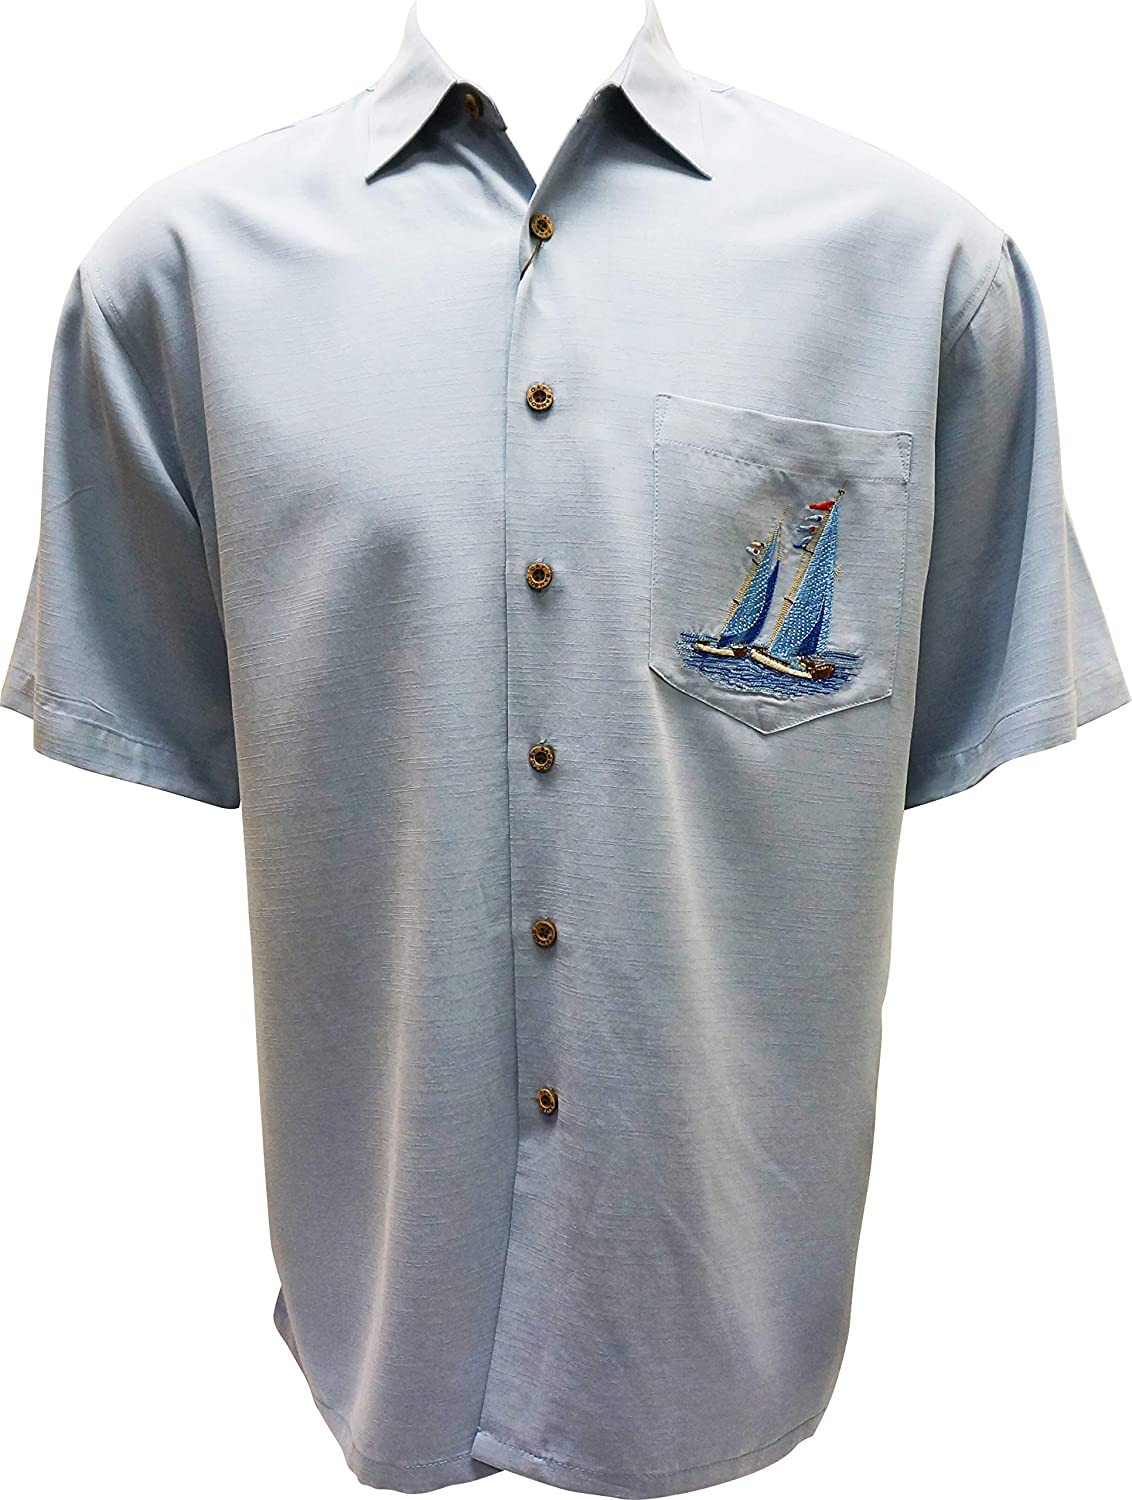 Button Front Embroidered Camp Shirt Bamboo Cay Mens Sailing The Good Life